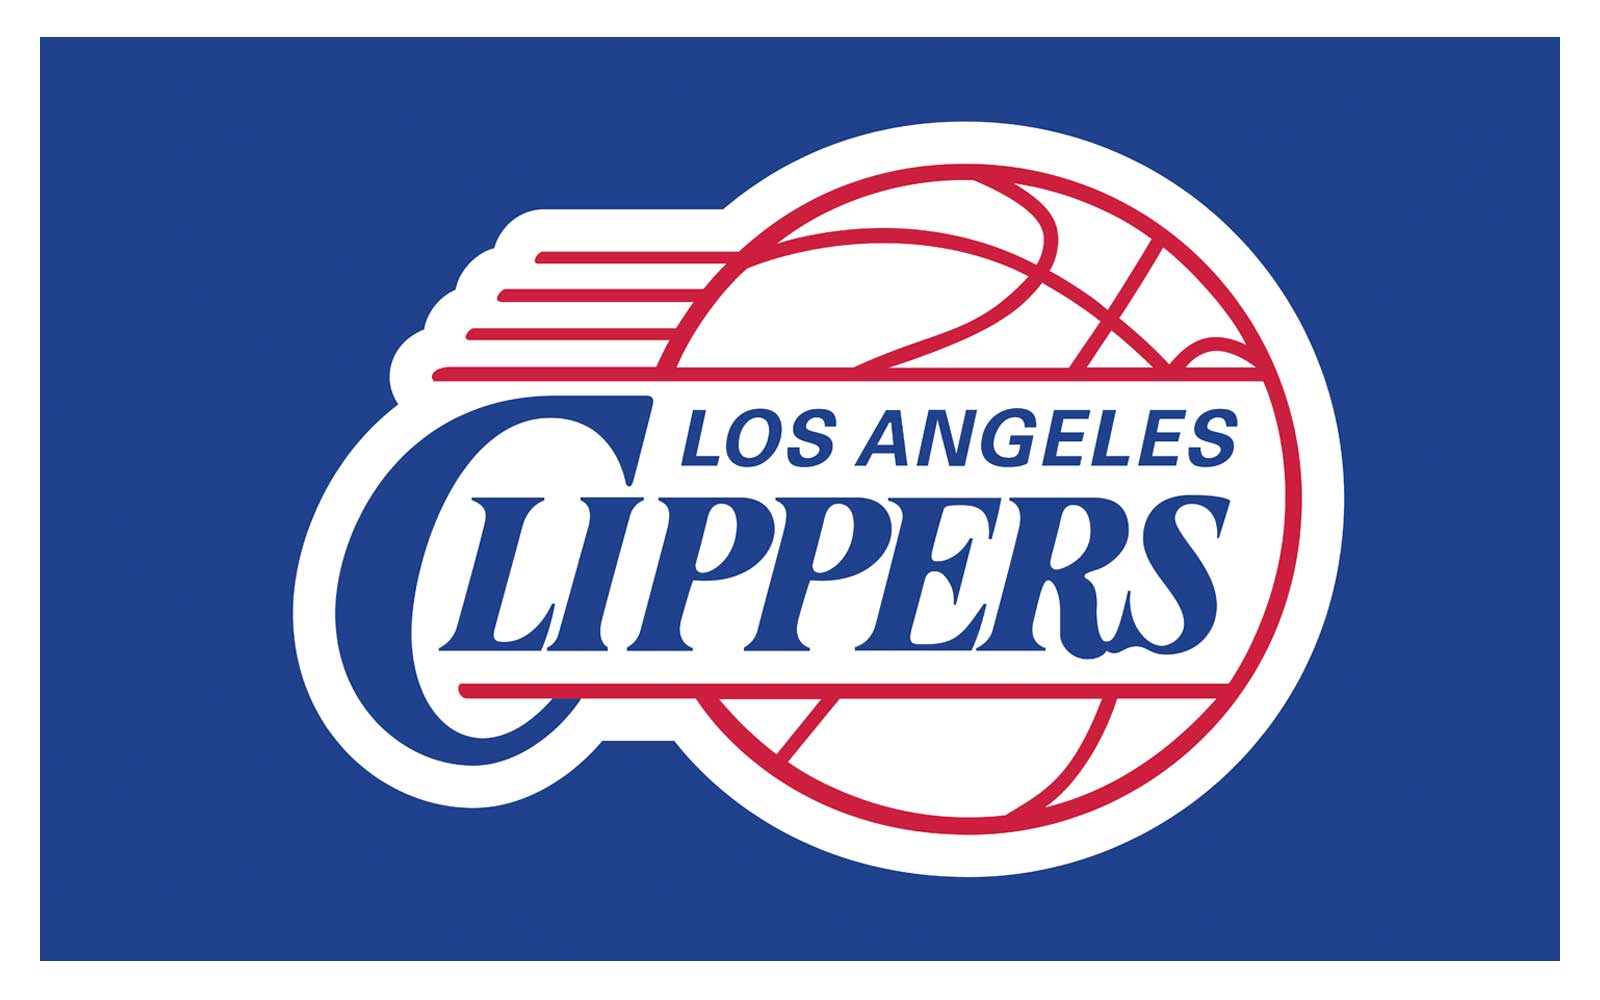 Los Angeles Clippers - Wikipedia